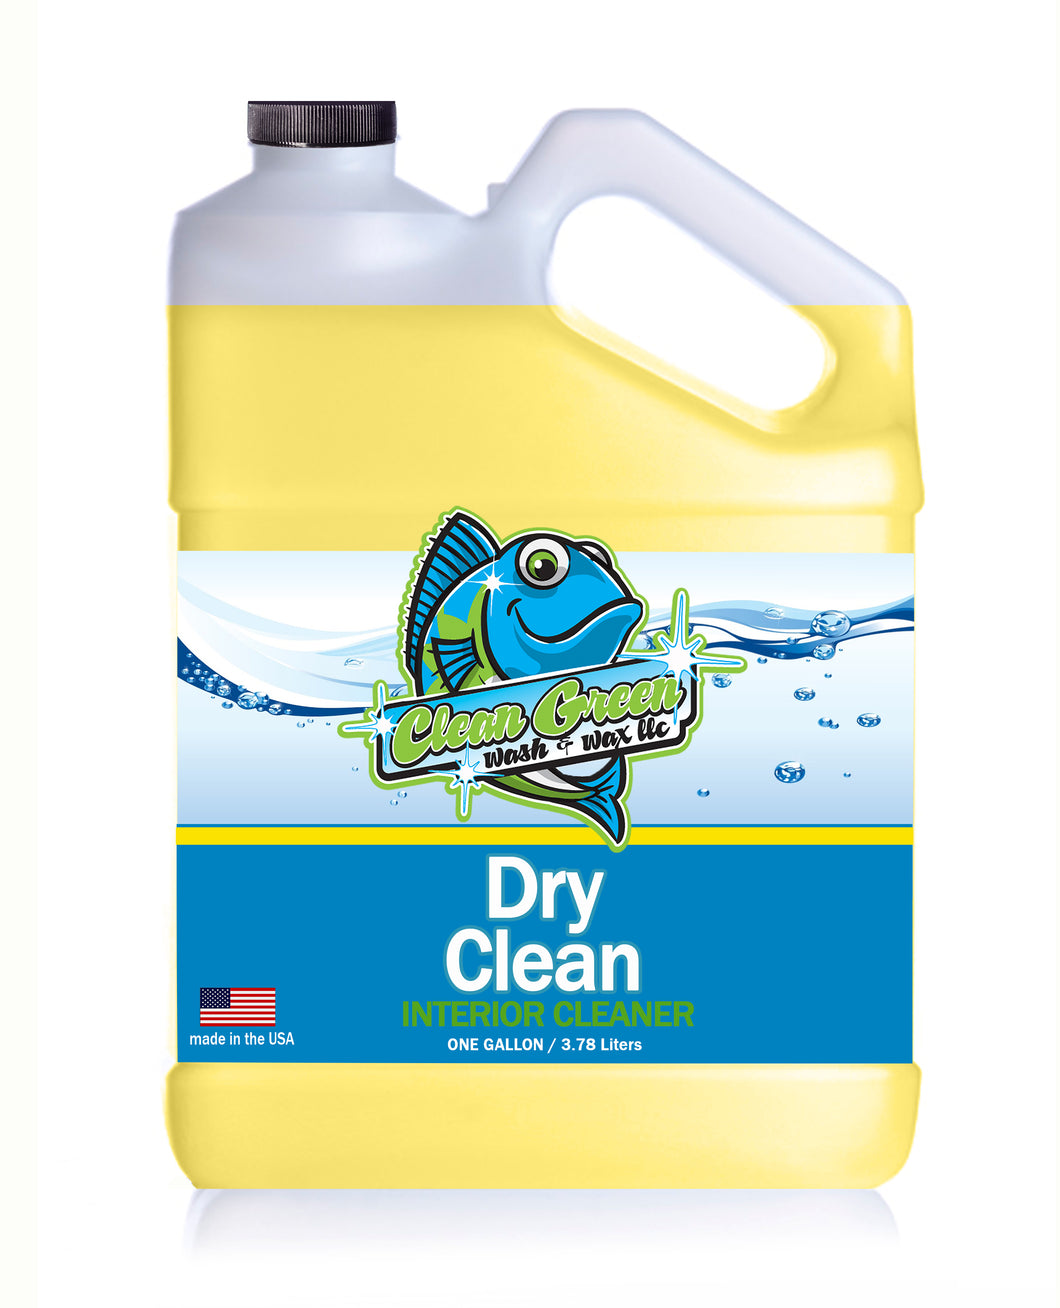 Clean Green Wash & Wax Dry Clean Interior Cleaner 1 Gallon Concentrate 30:1